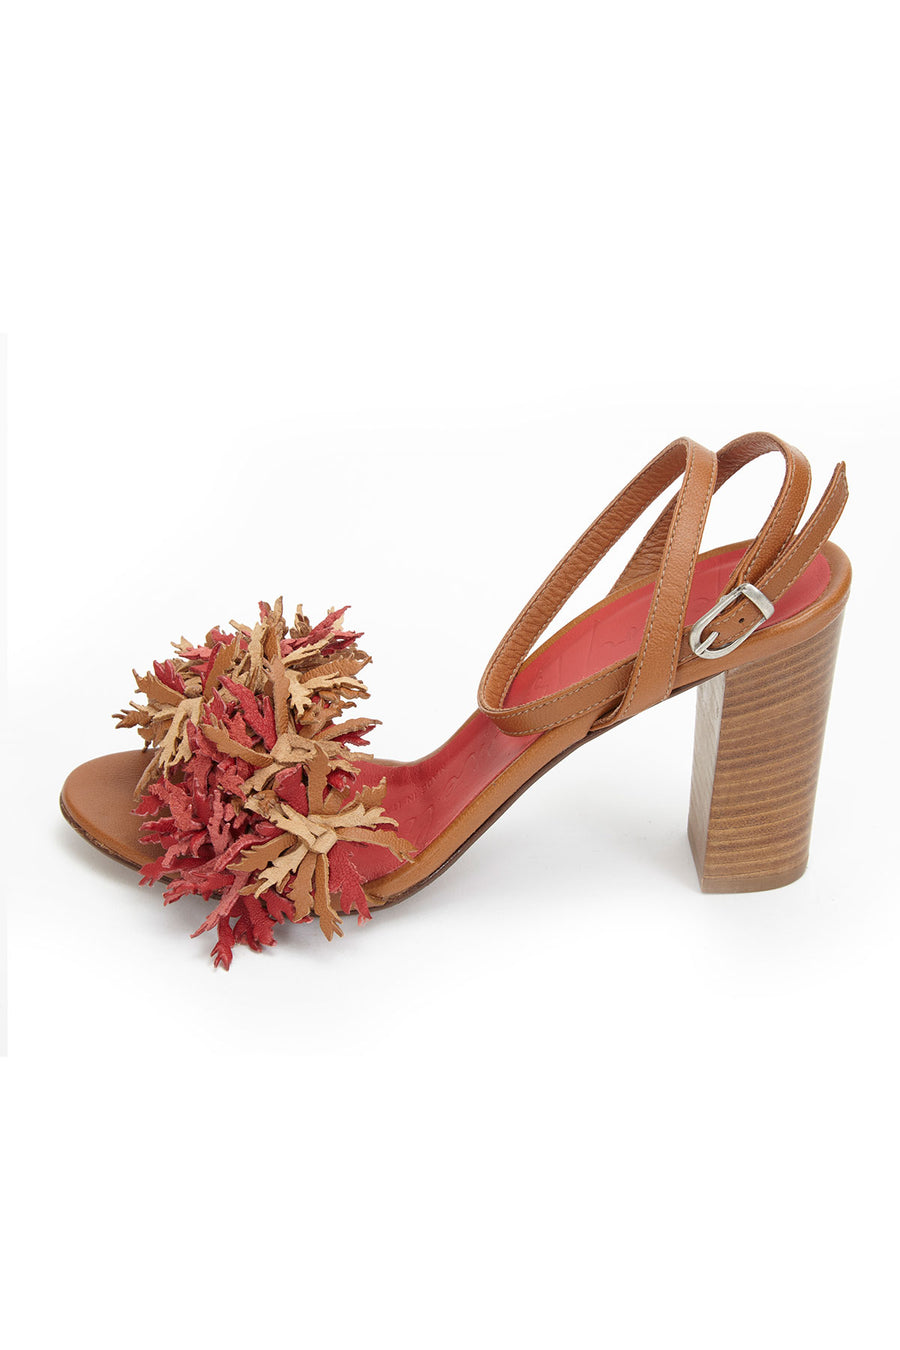 Henry Beguelin Sandalo Fiori Coral and Natural Brown